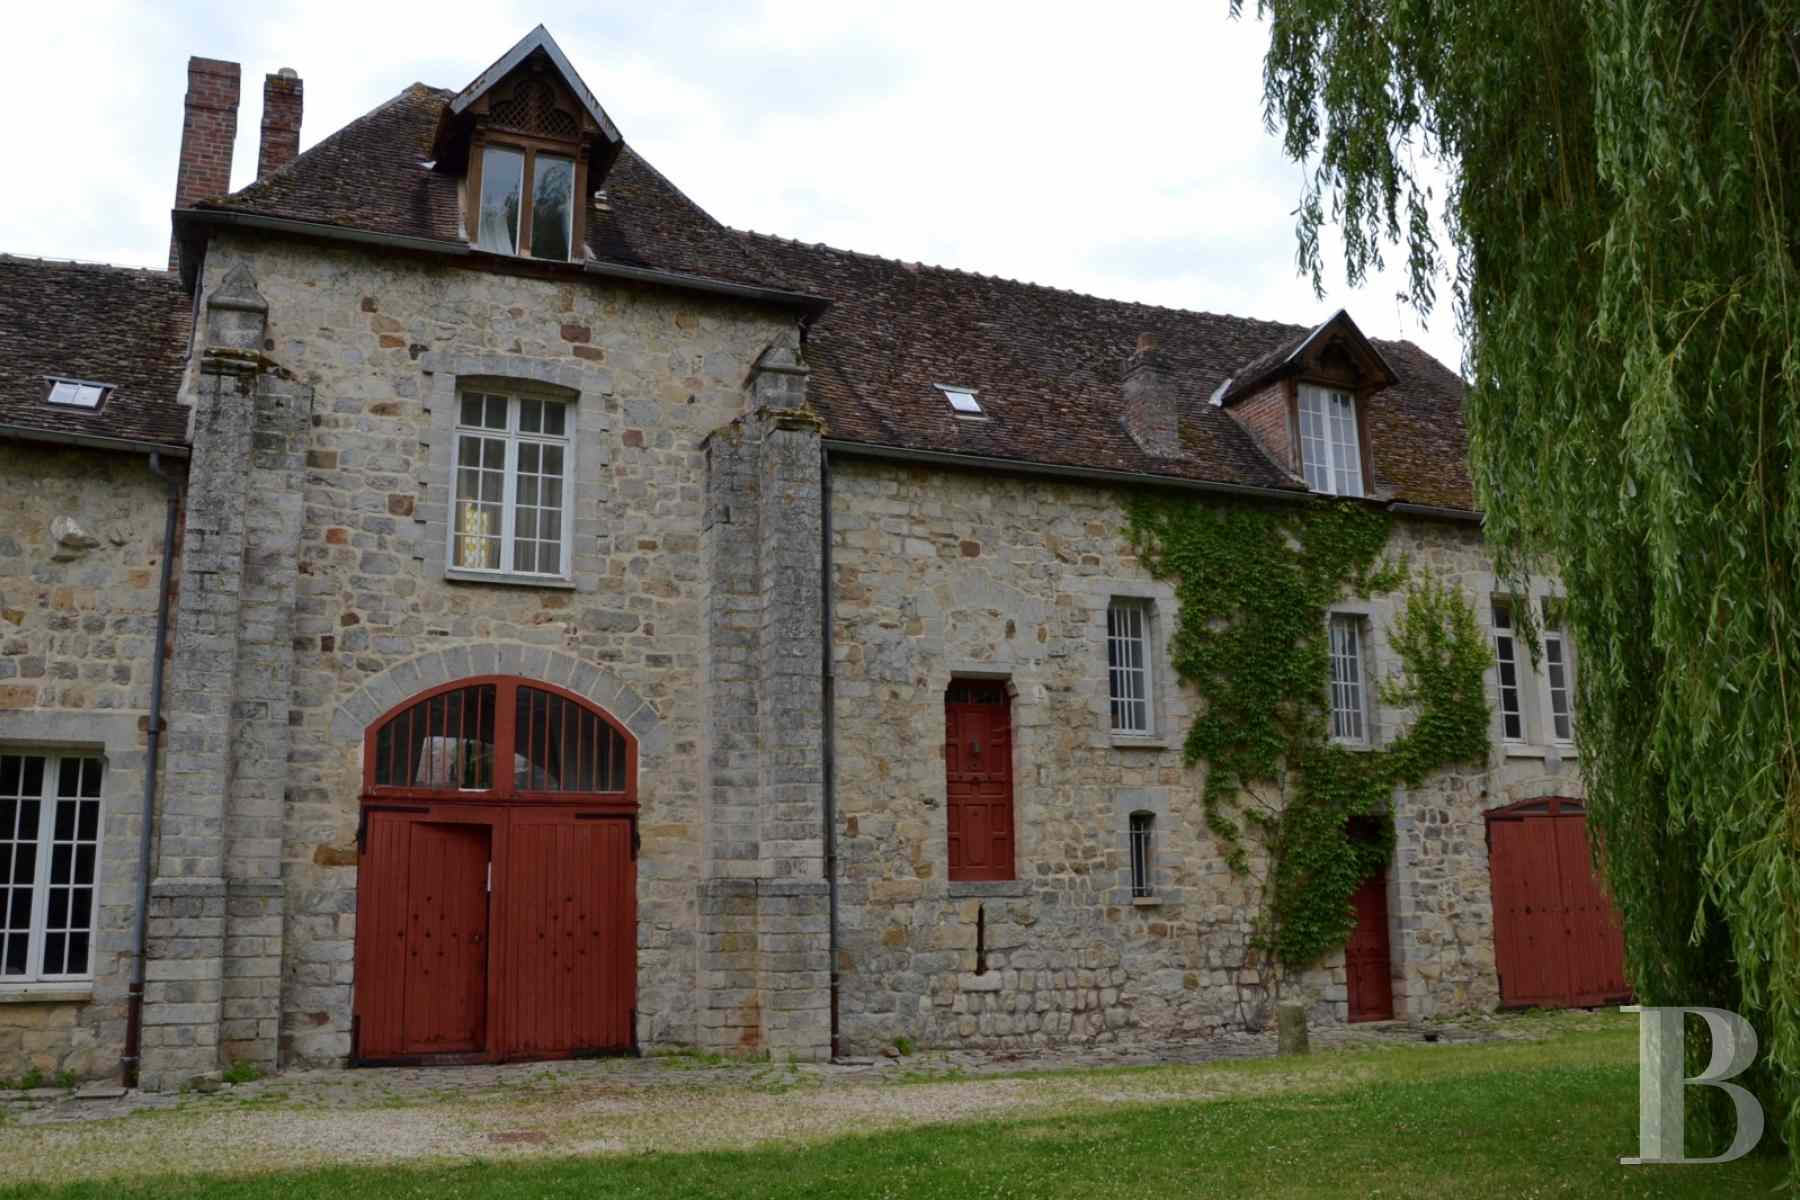 France mansions for sale burgundy medieval renaissance - 4 zoom